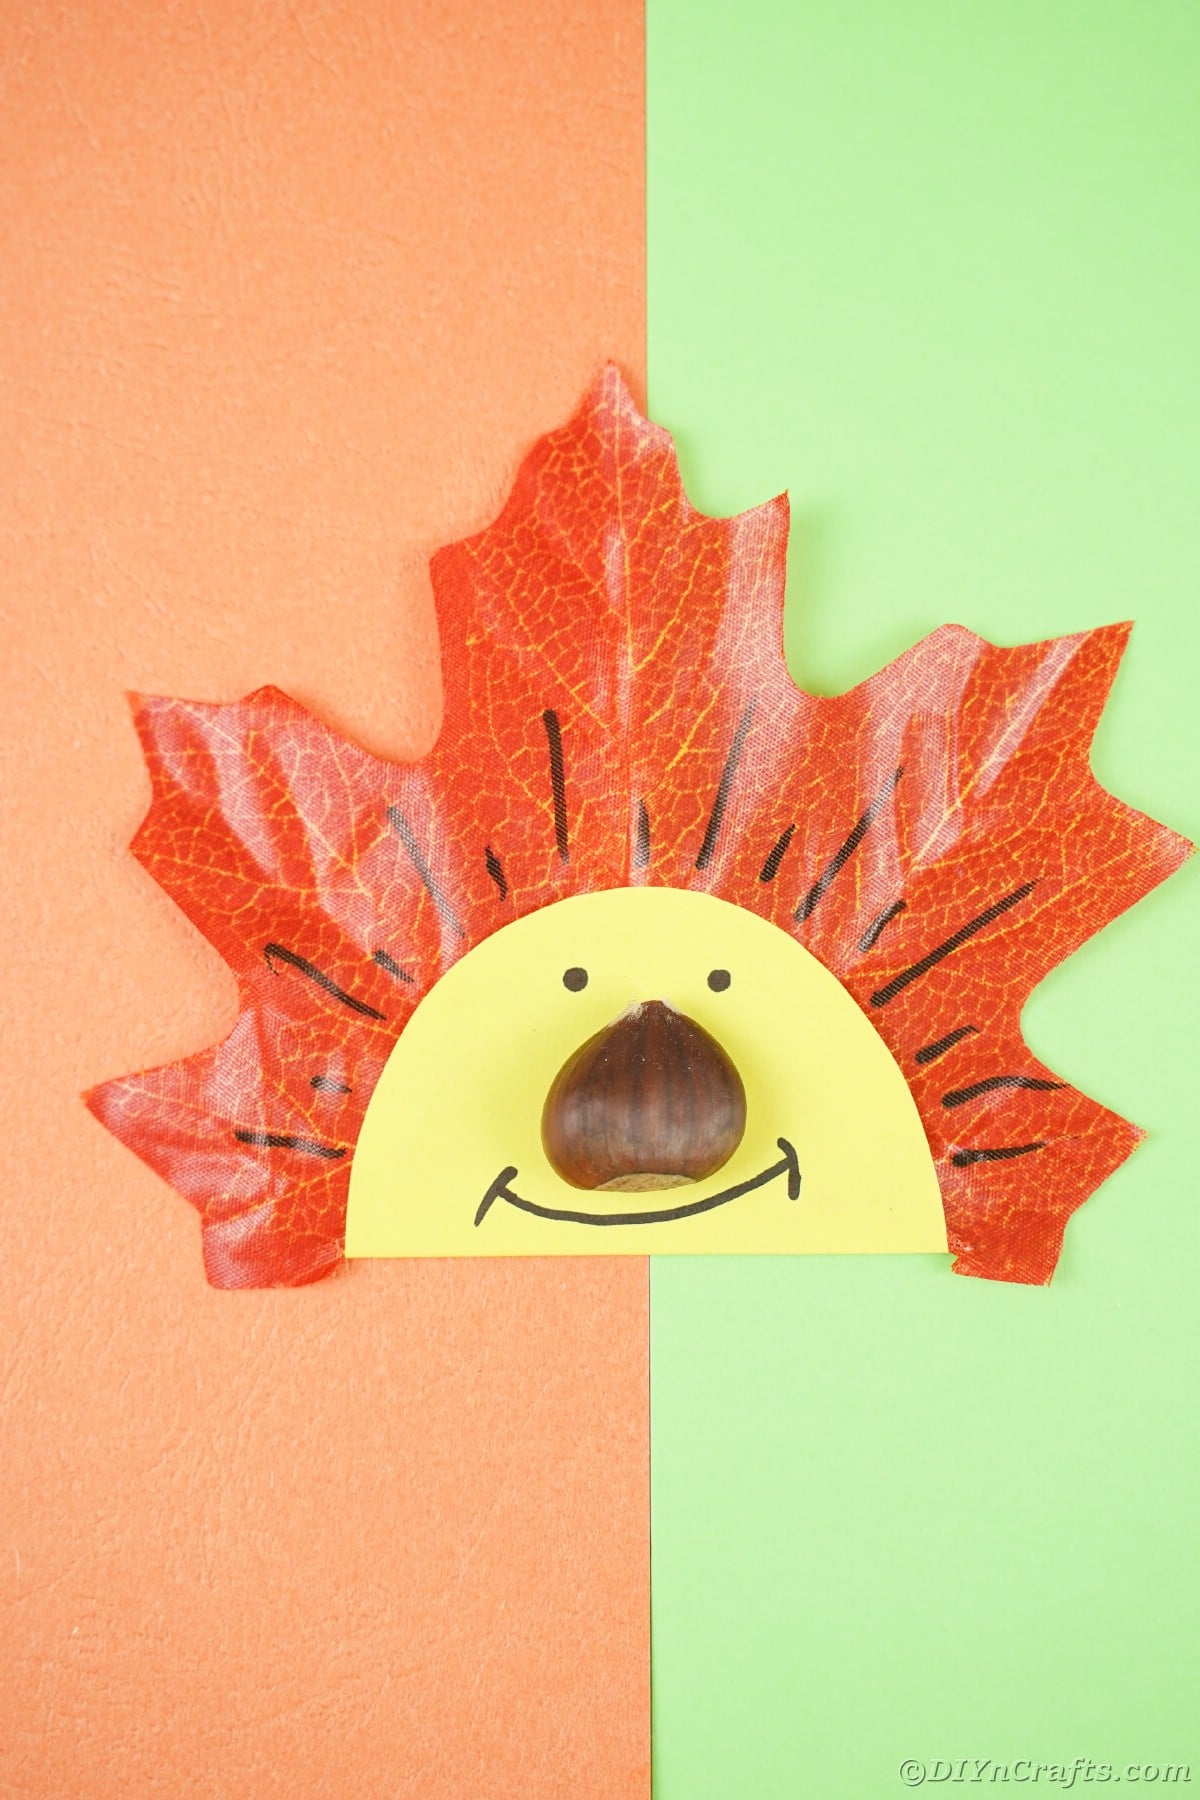 Smiling face on fake leaf laying on orange and green paper